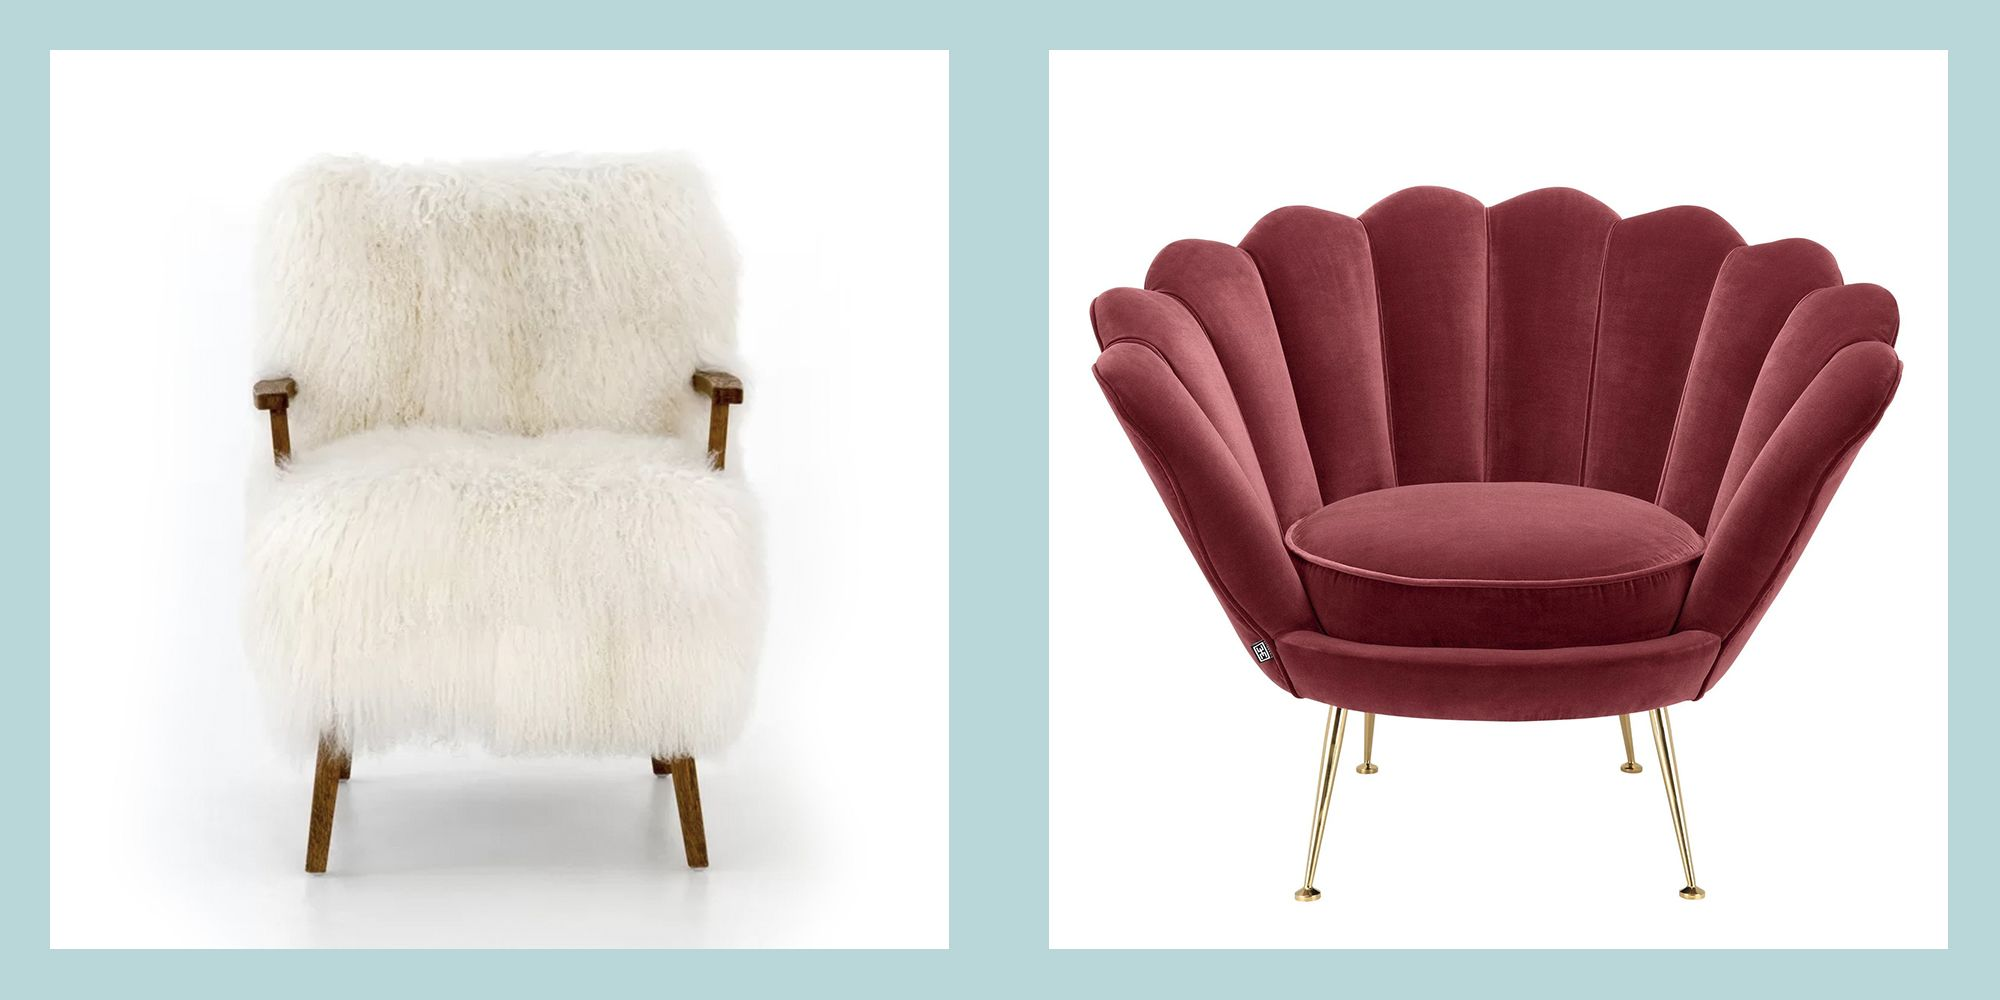 3 Chairs for Small Spaces - Accent Chairs to Make Your Place Pop